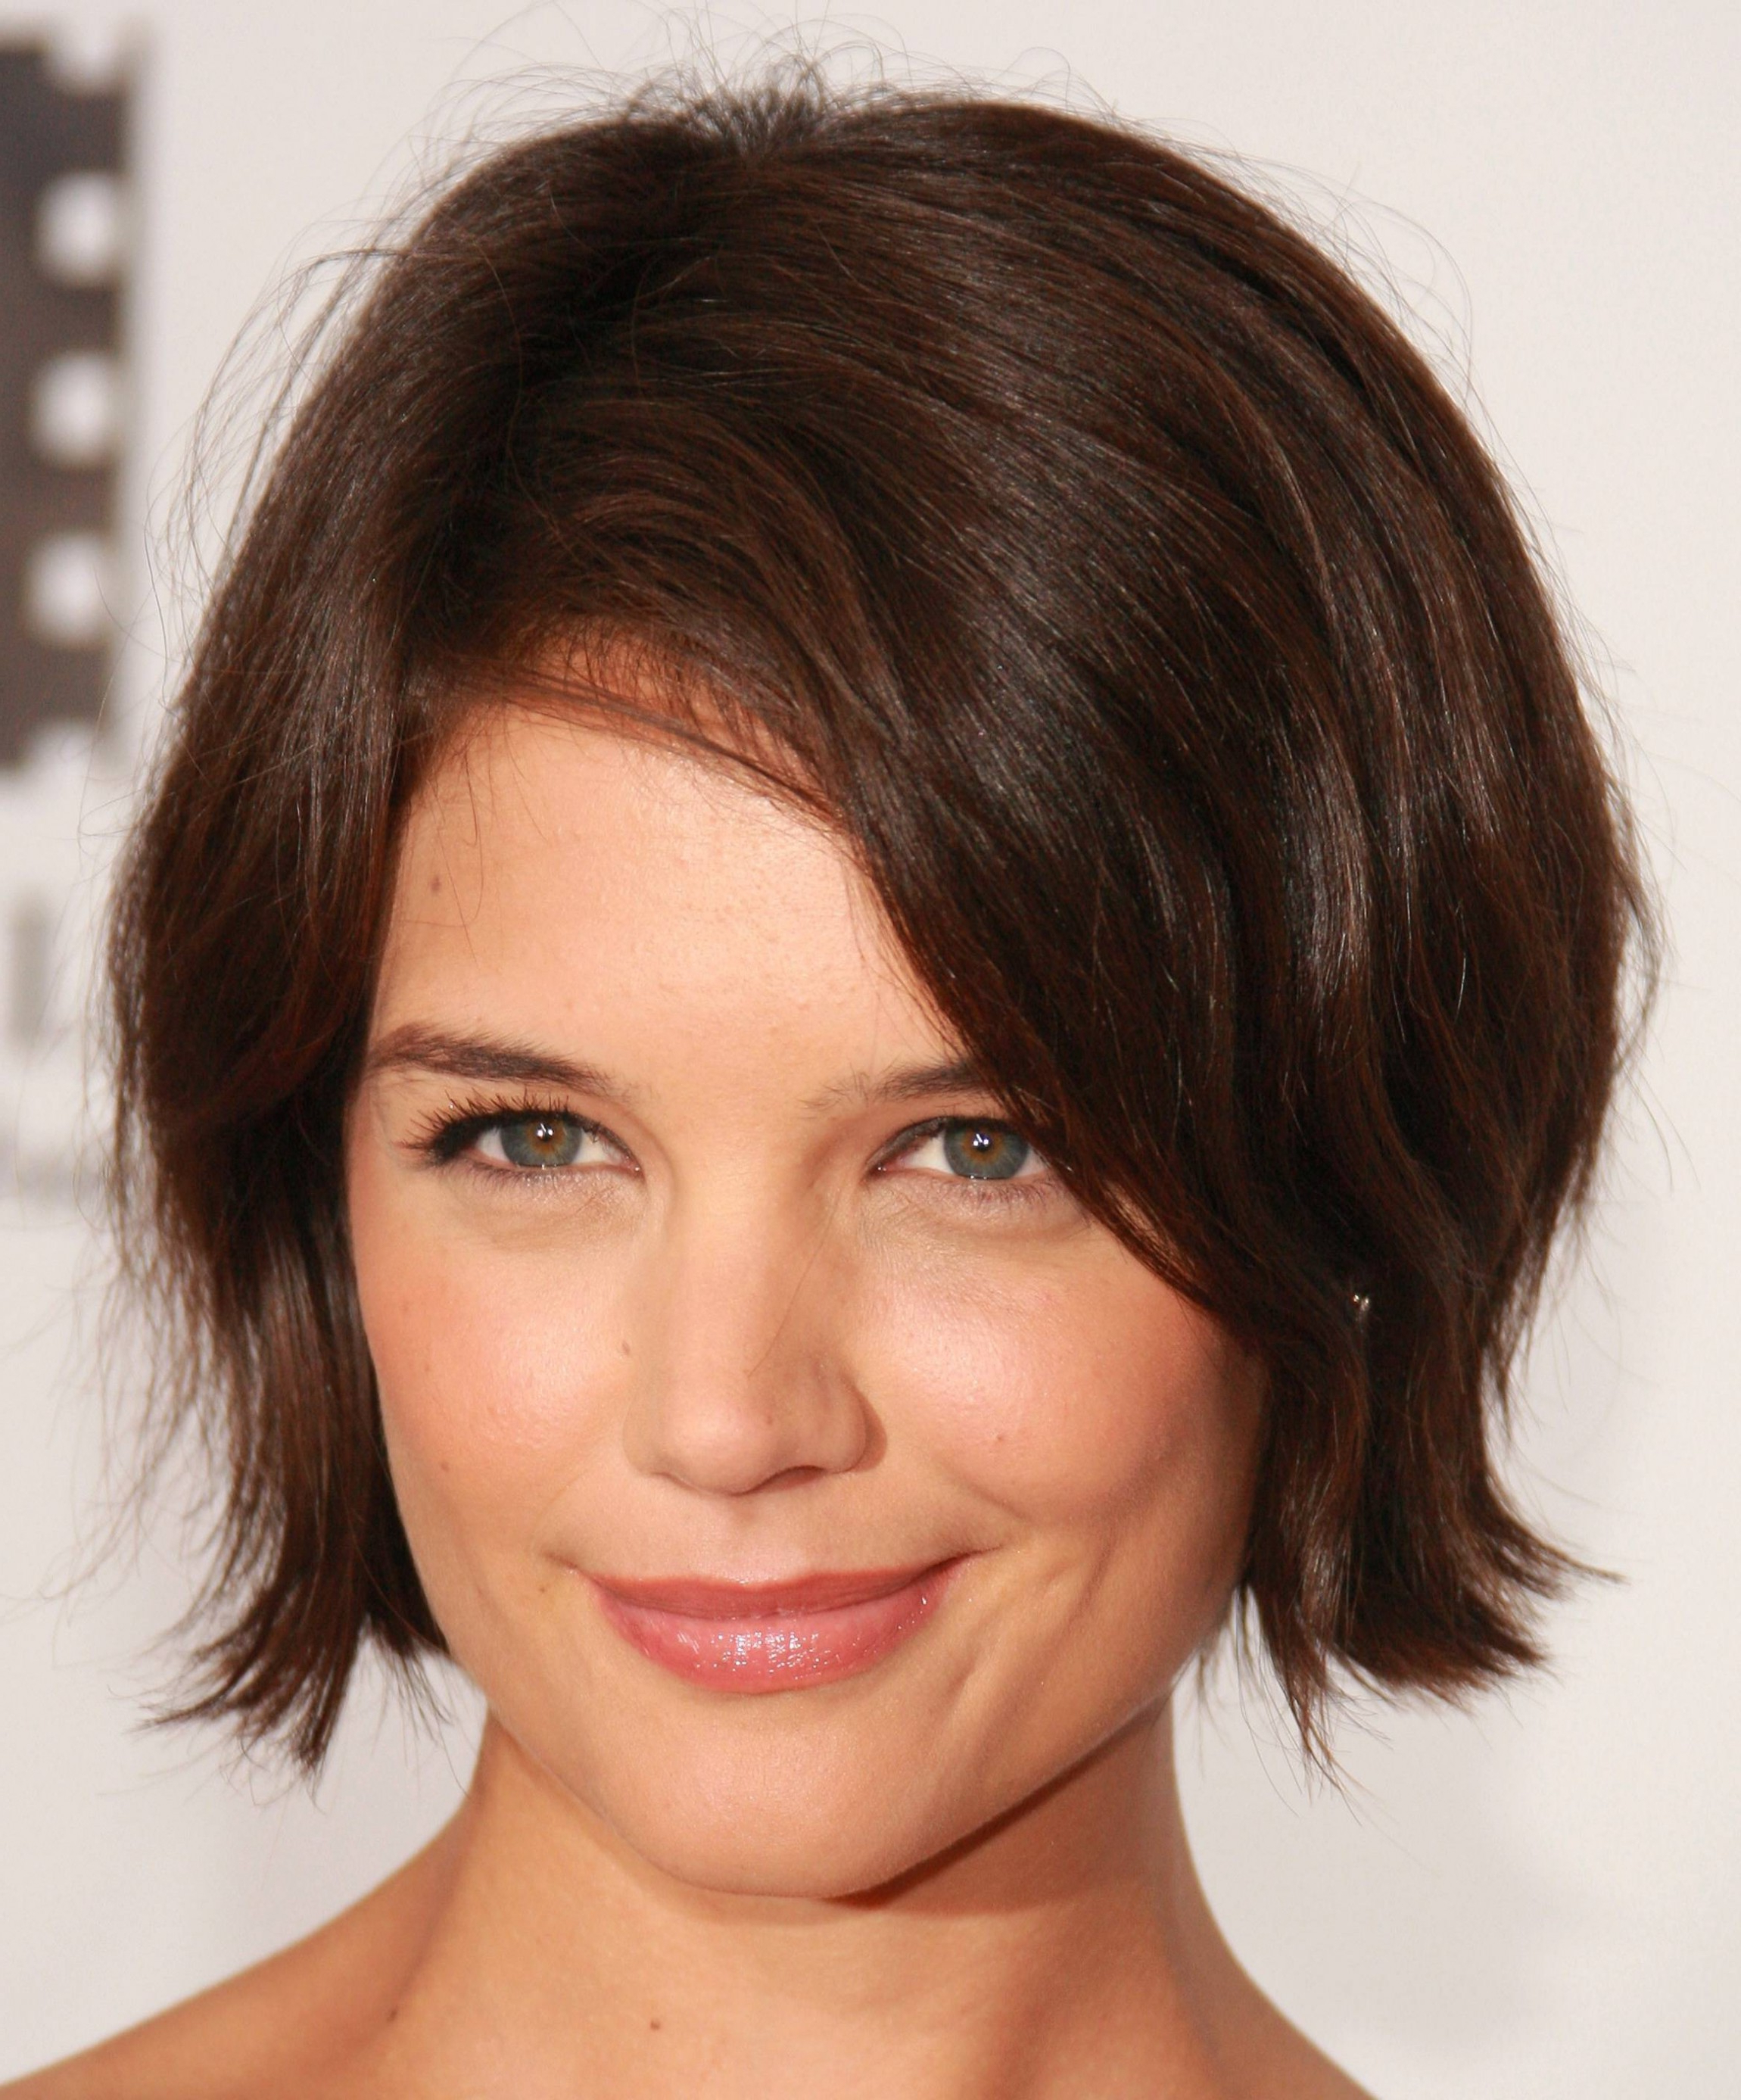 Best Short Hairstyles – Cute Hair Cut Guide For Round Face Shape Intended For Short Haircuts For Fat Faces (View 13 of 25)